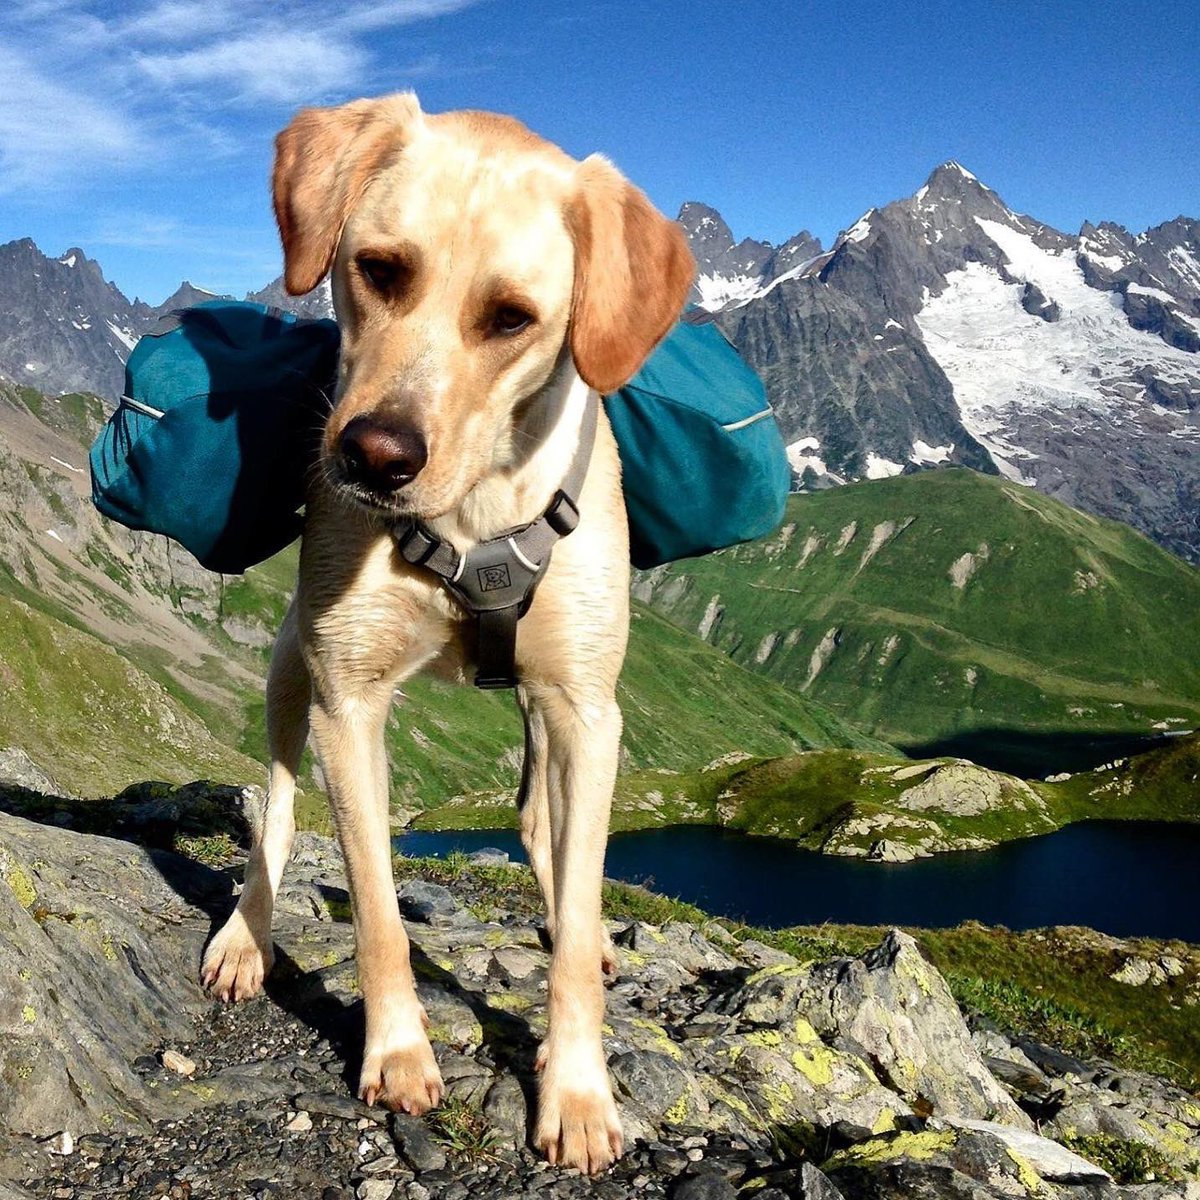 "If ur Scottish please RT  LOST DOG in Scotland!! Please share and help us find him. Last seen on ""Ben Macdui"" in the Cairngorms park on Friday 28.6. around noon. He's wearing a blue backpack, very friendly. Call +33 6 98 73 26 77 if you see him. @gigsinscotland @WalknScotland"